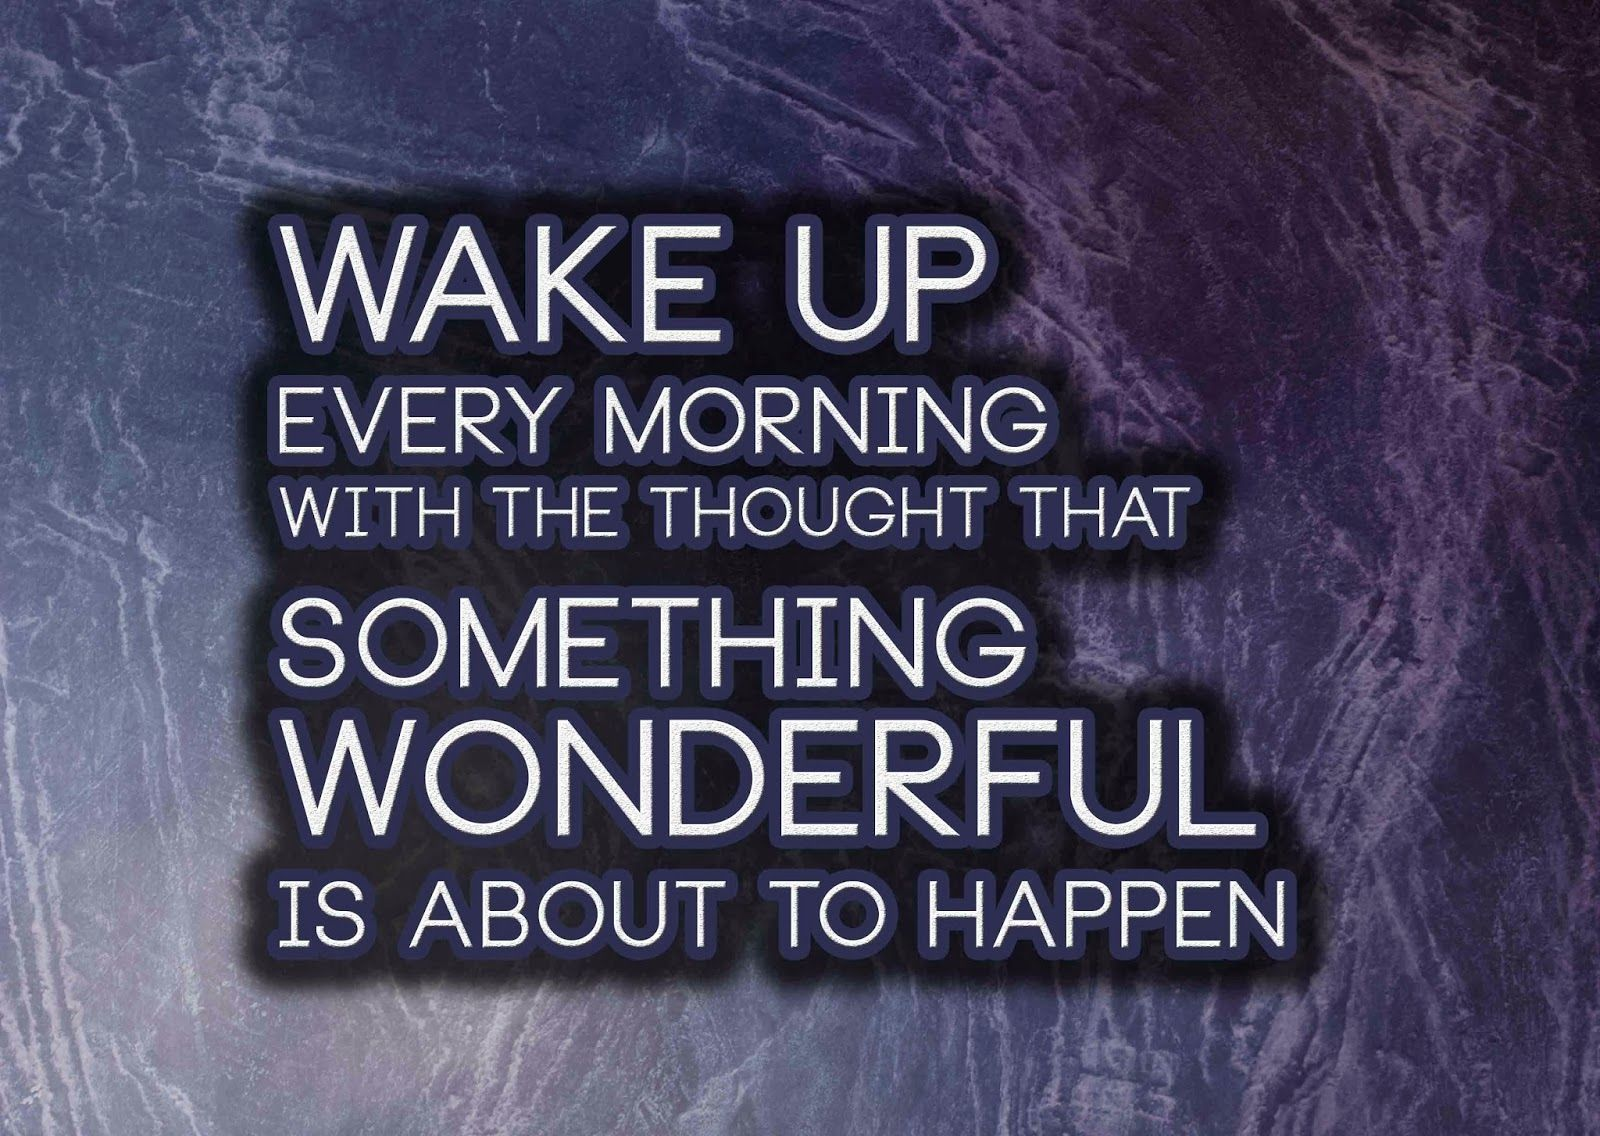 Wake Up Every Morning With The Thought That Something Wonderful Is About To Happen Anonymous Art Of Revolution Accomplishment Quotes Thoughts Happy Words